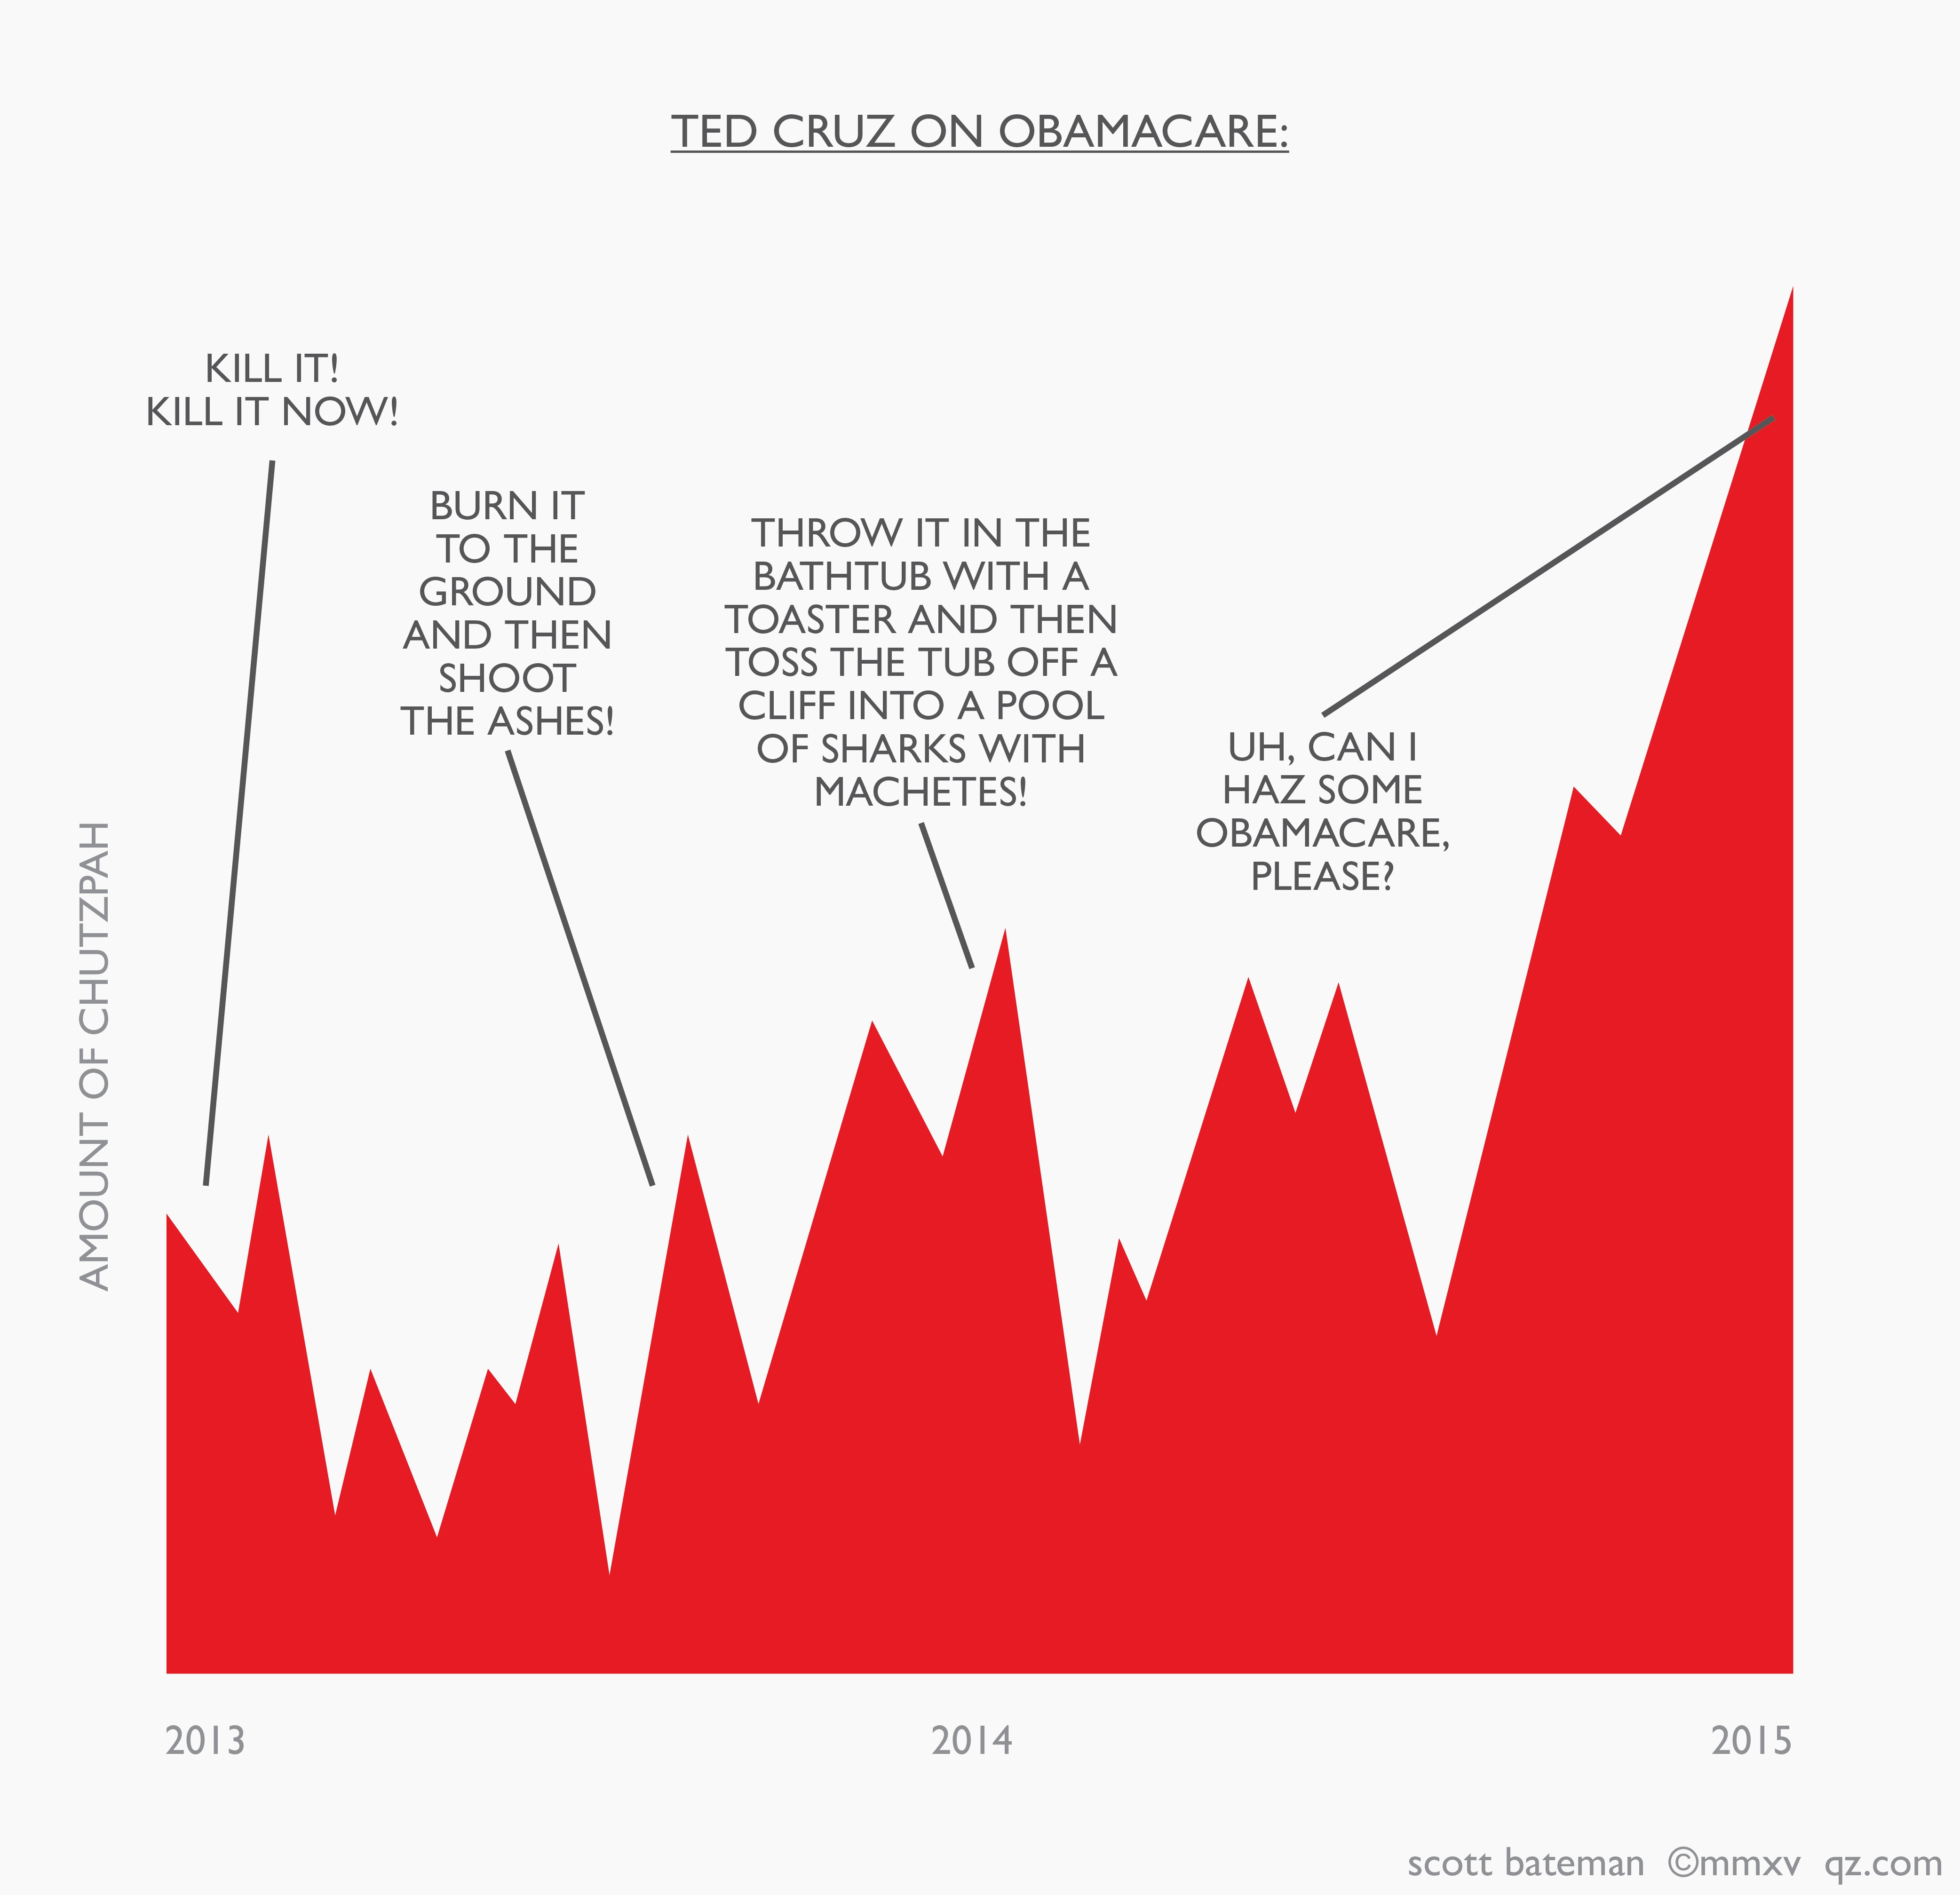 Funny chart of Ted Cruz on Obamacare